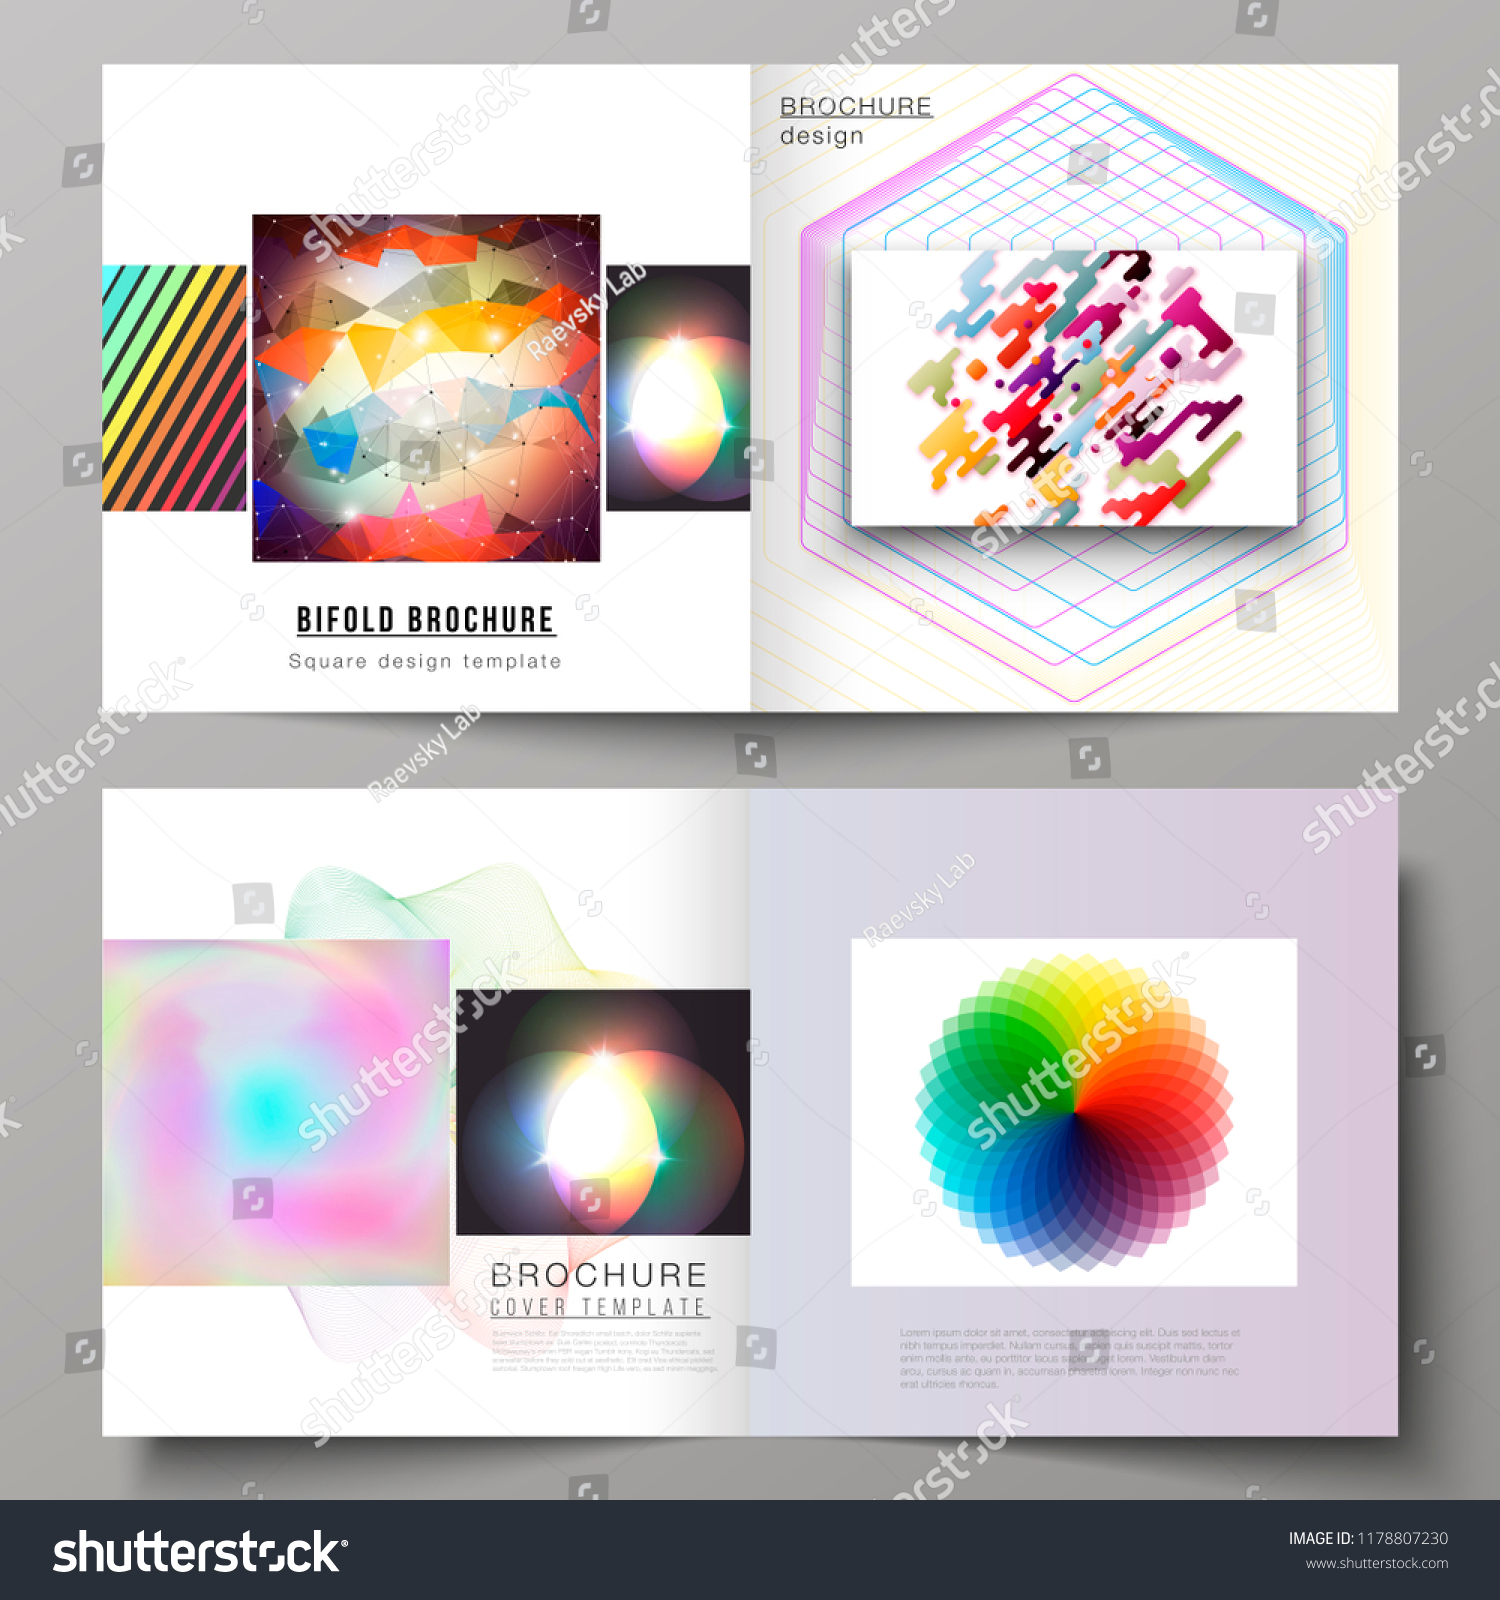 vector illustration layout two covers templates stock vector